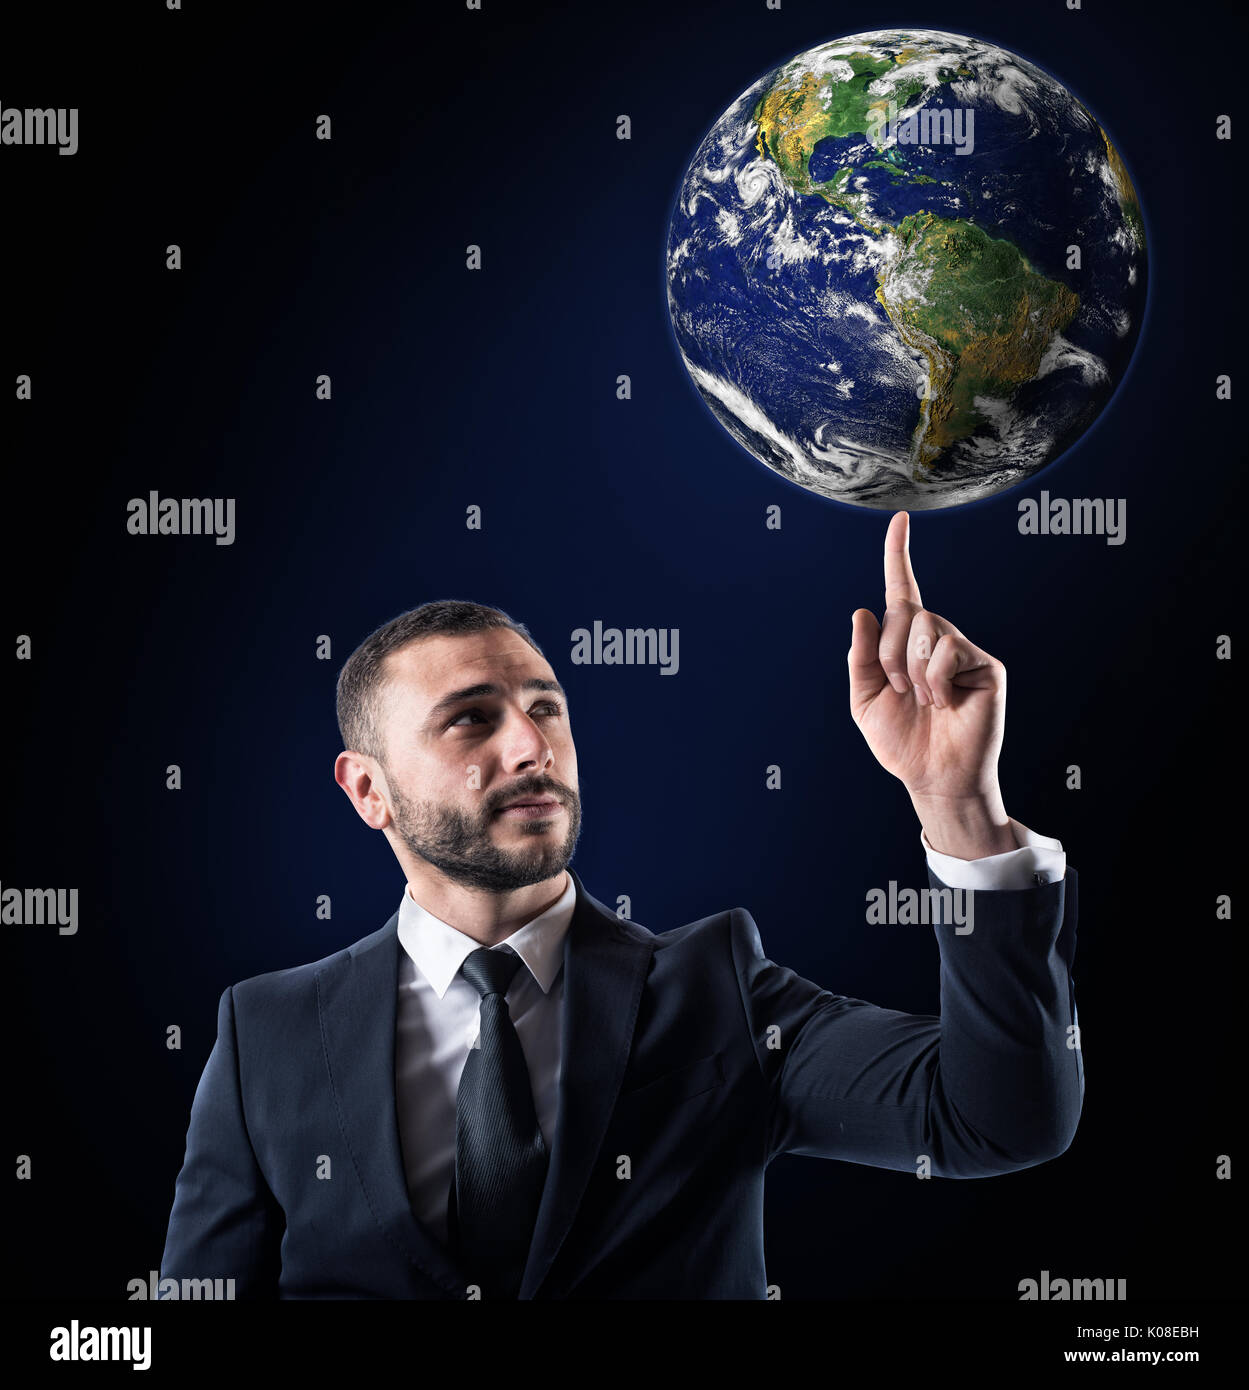 Businessman holds the world with a finger. World provided by NASA - Stock Image